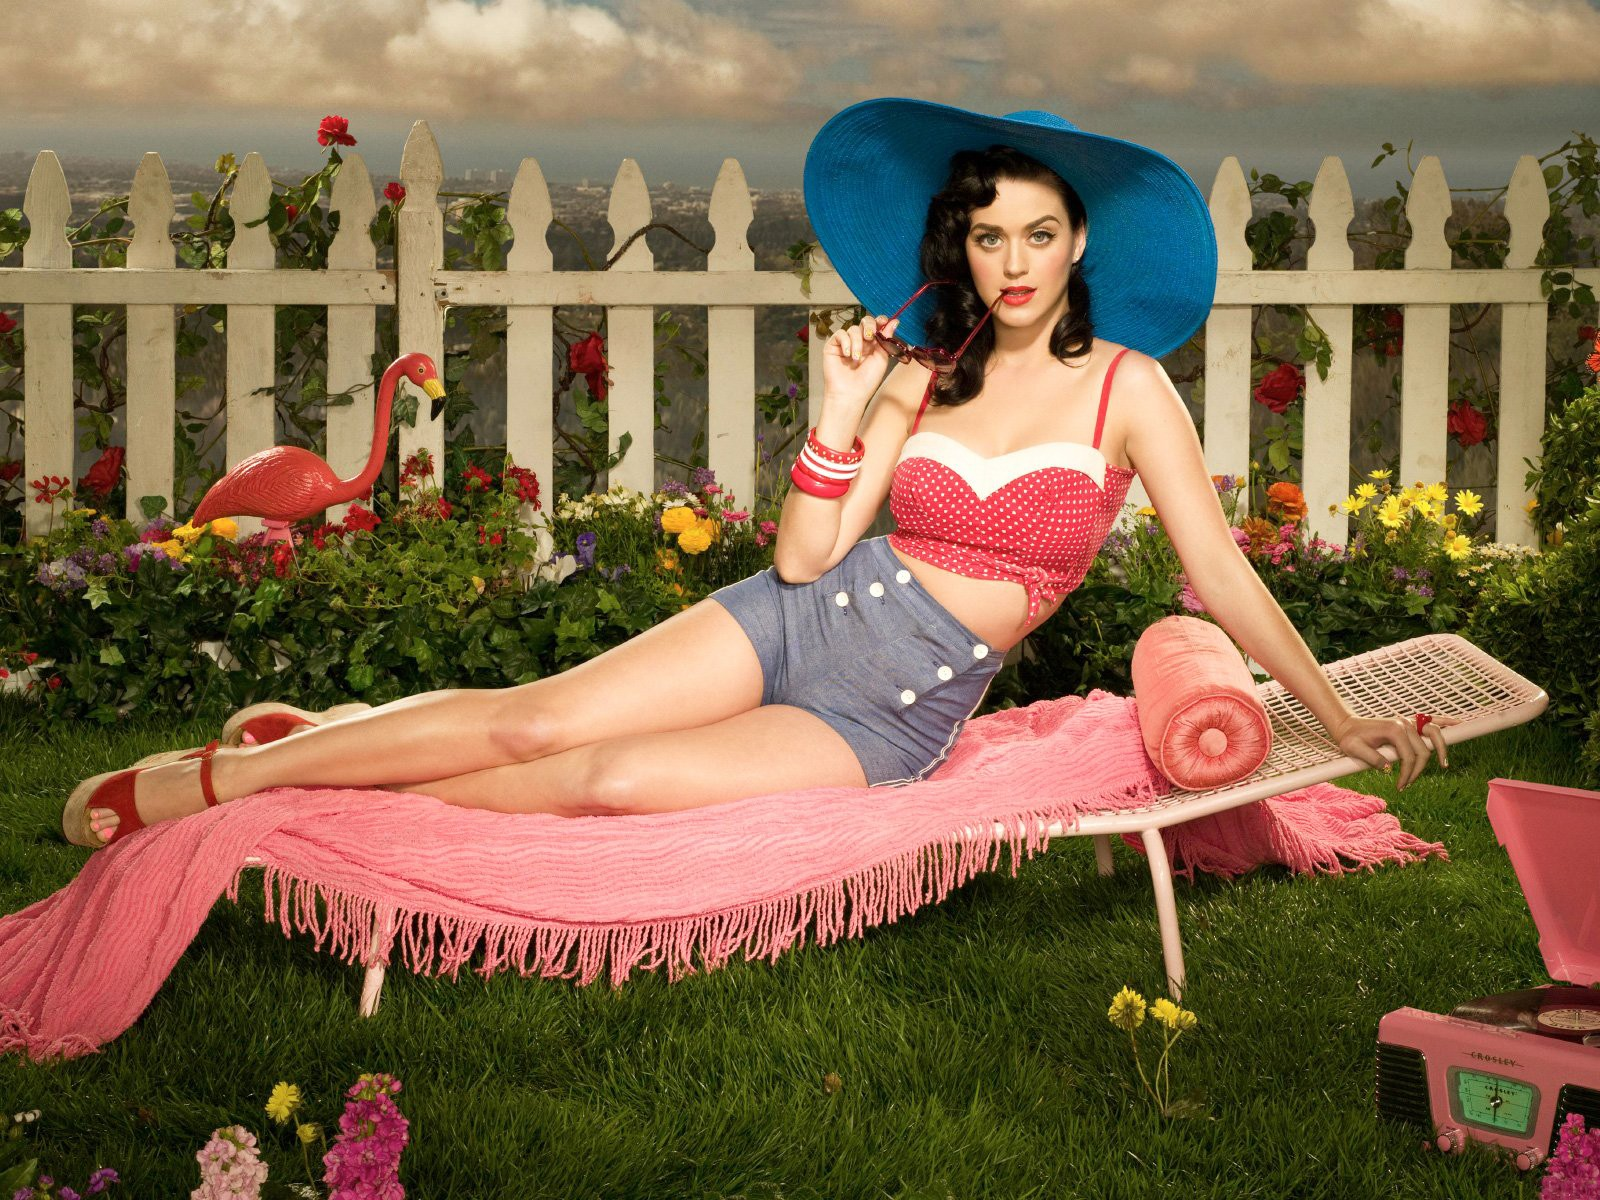 http://4.bp.blogspot.com/-jT0taXJVfxk/TeW1RzUScCI/AAAAAAAACb8/V8ckNBq8cC4/s1600/un-wallpaper-di-katy-perry-in-stile-pin-up-anni-30-40-125388.jpg